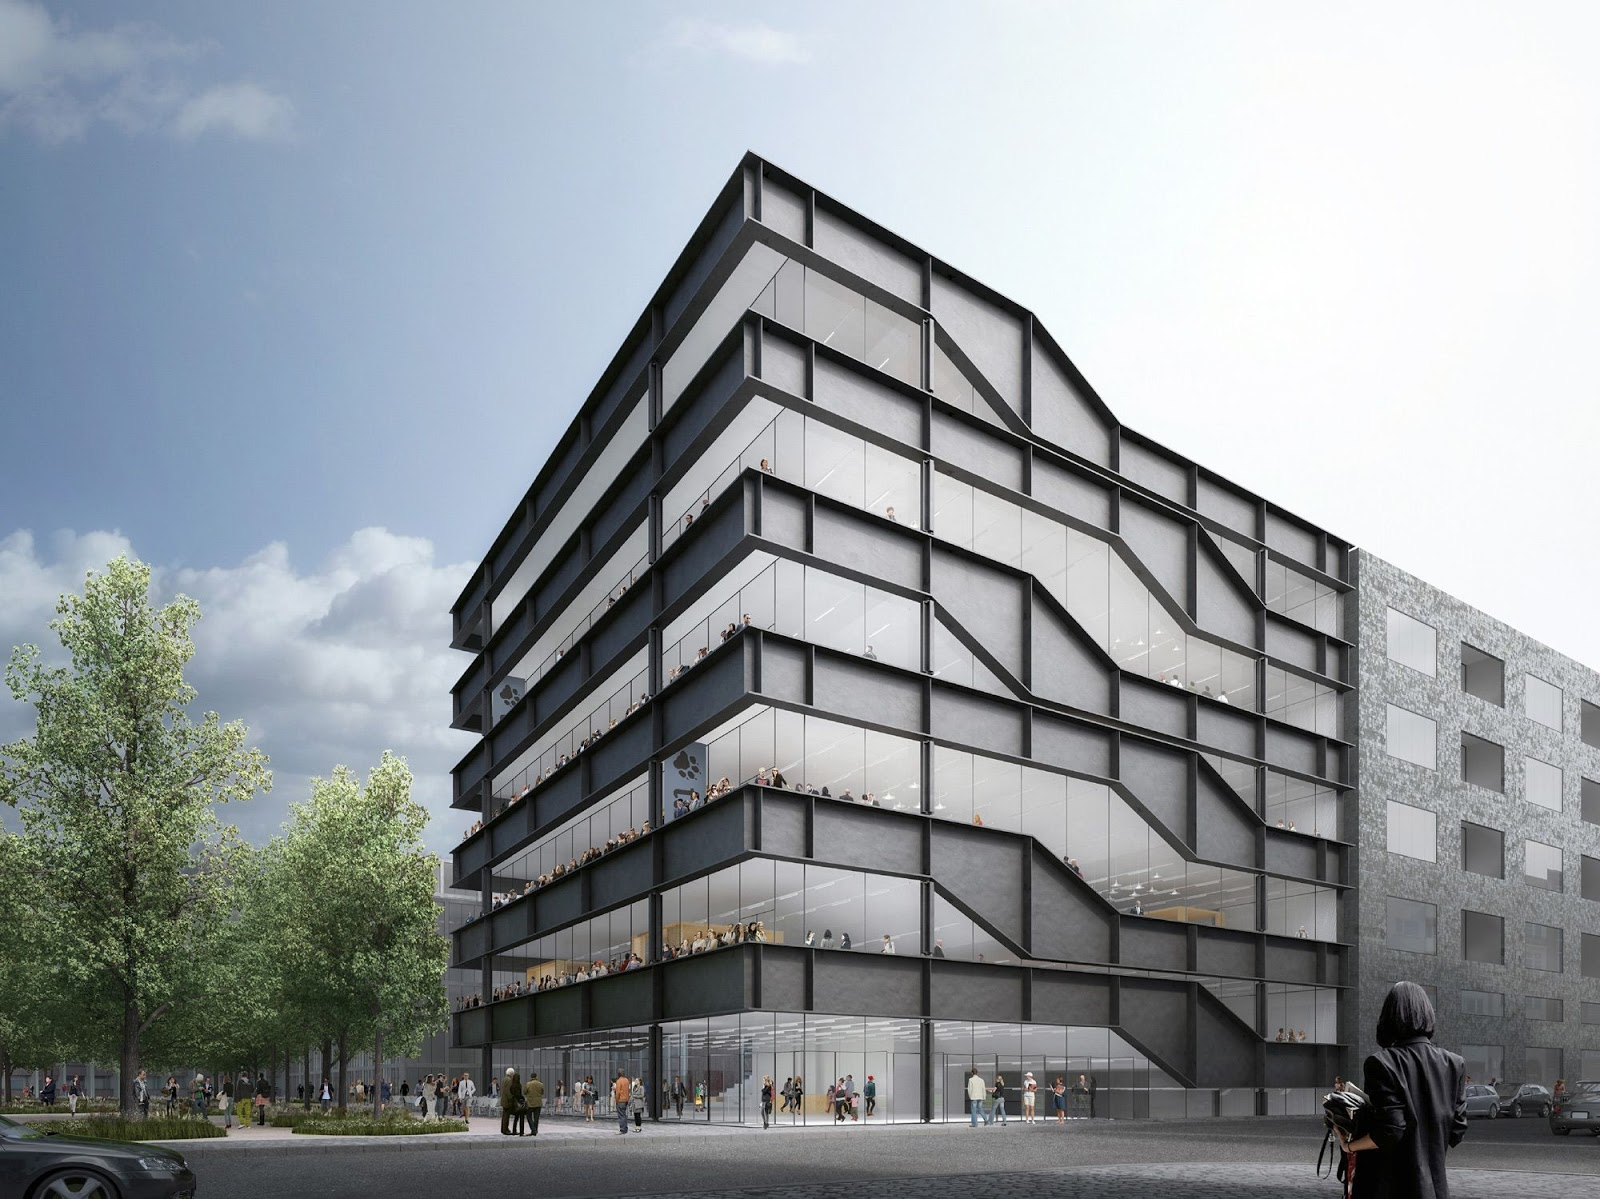 Heneghan peng architects a f a s i a for Architecture berlin